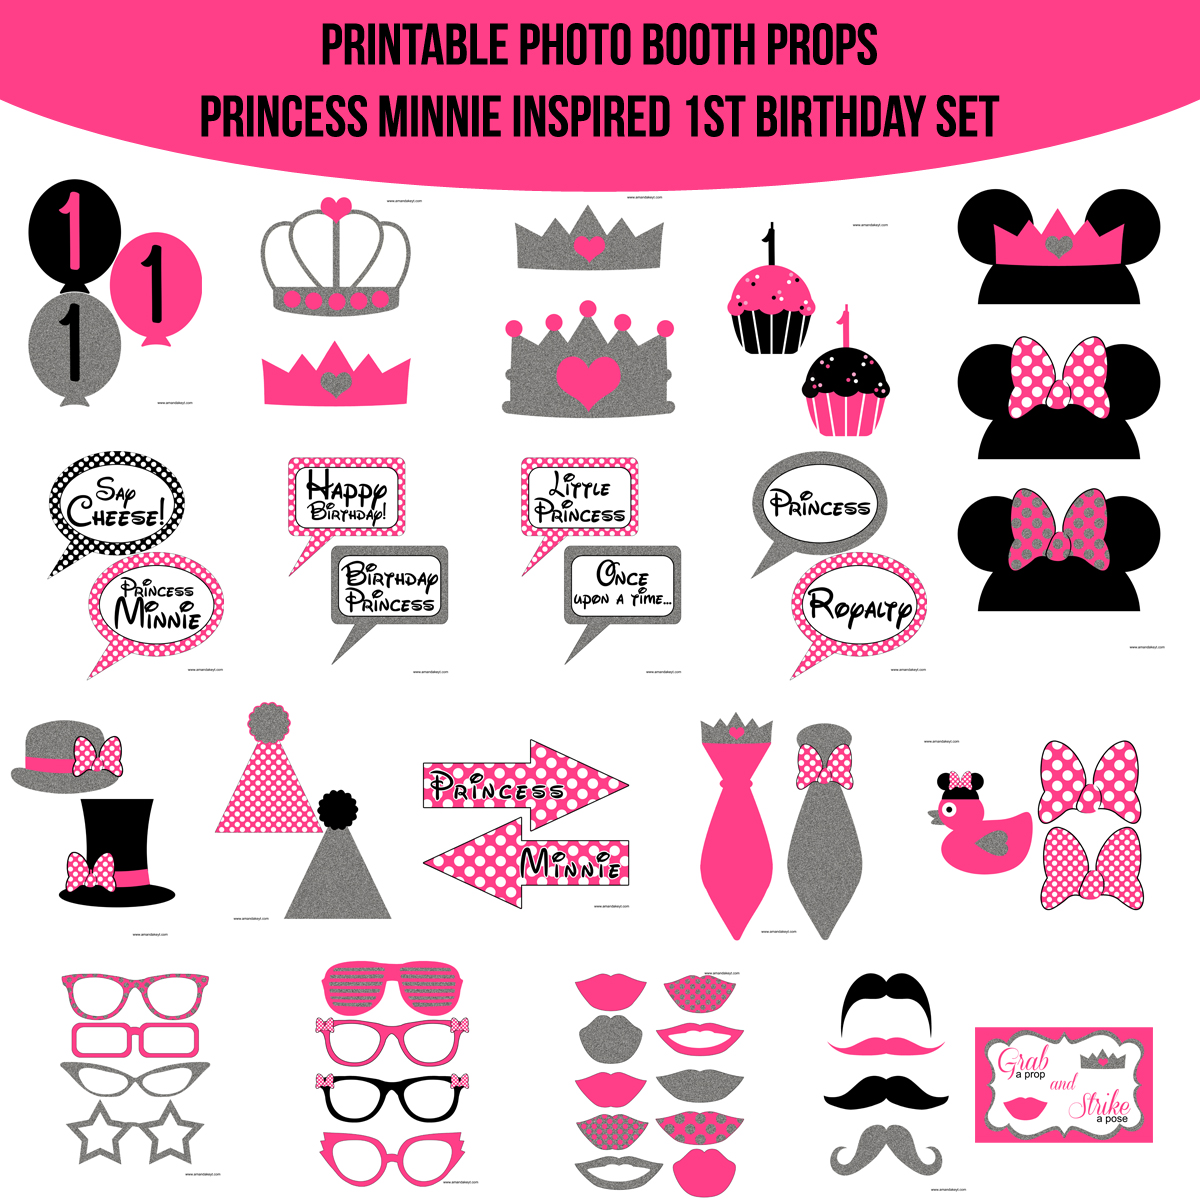 photograph regarding Minnie Mouse Photo Booth Props Printable identified as Prompt Down load Princess Minnie Influenced 1st Birthday Printable Photograph Booth Prop Mounted Amanda Keyt Printable Plans